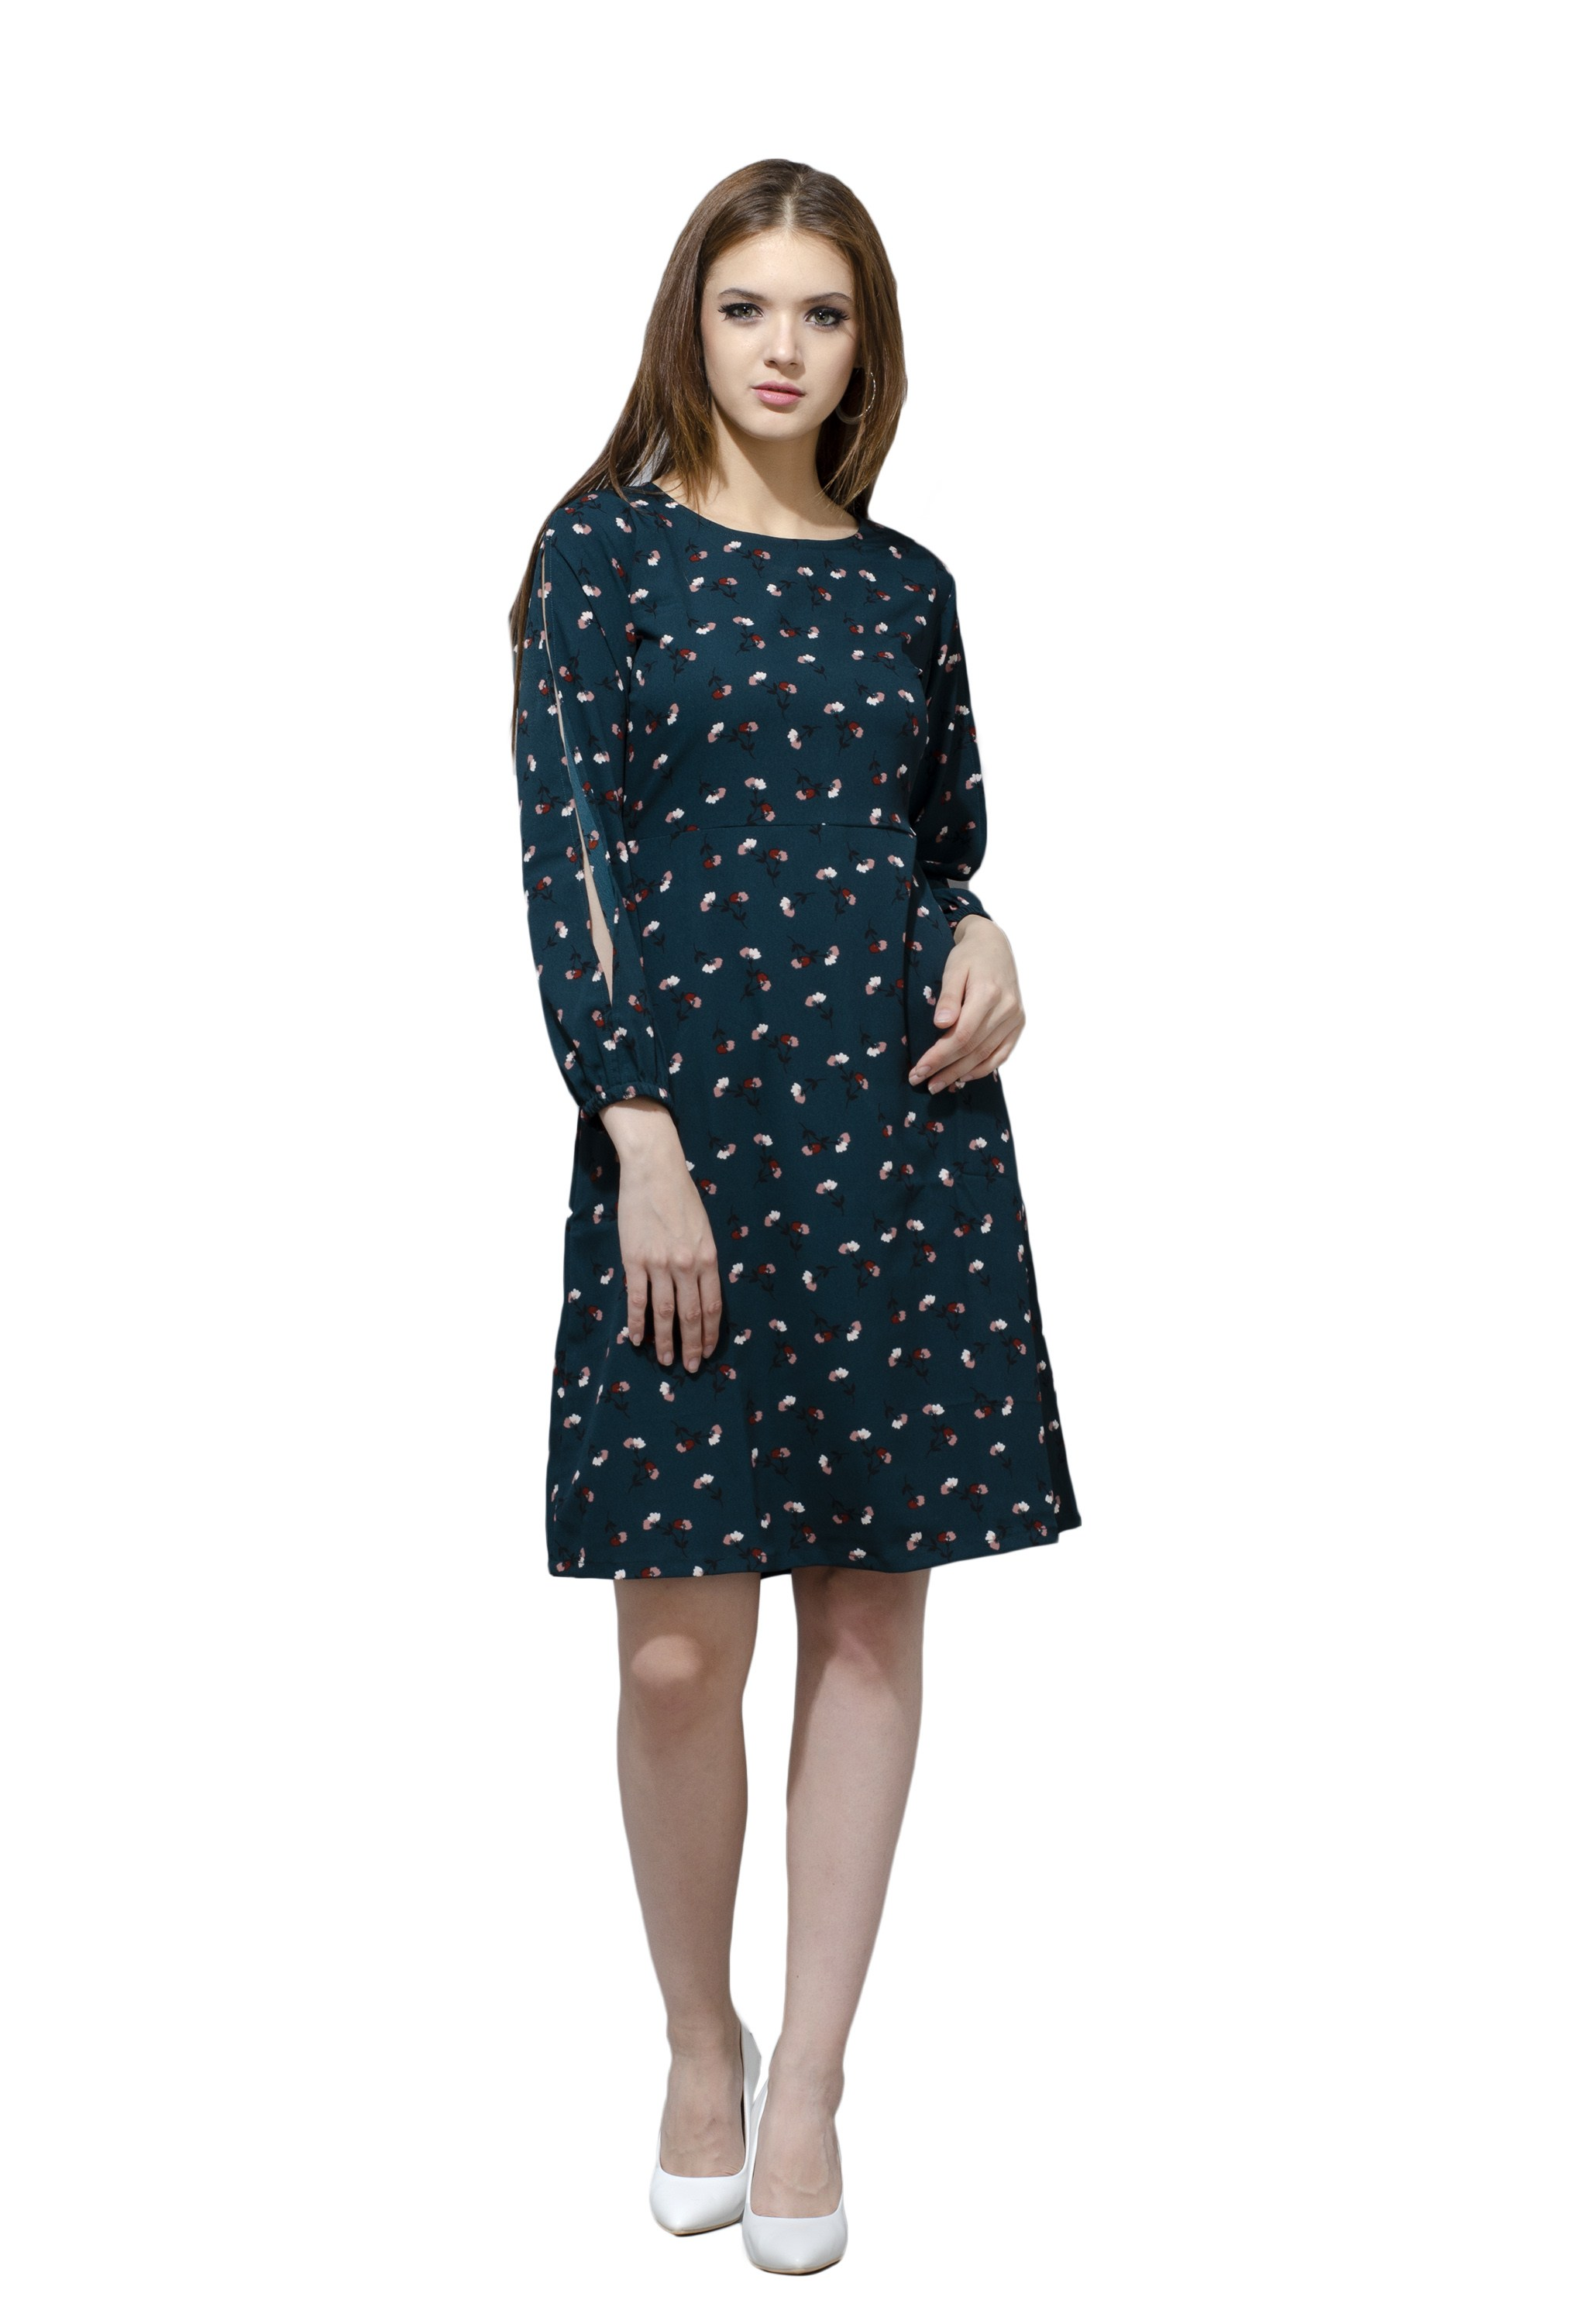 Green Full Sleeved Dress from Grab Your Garb